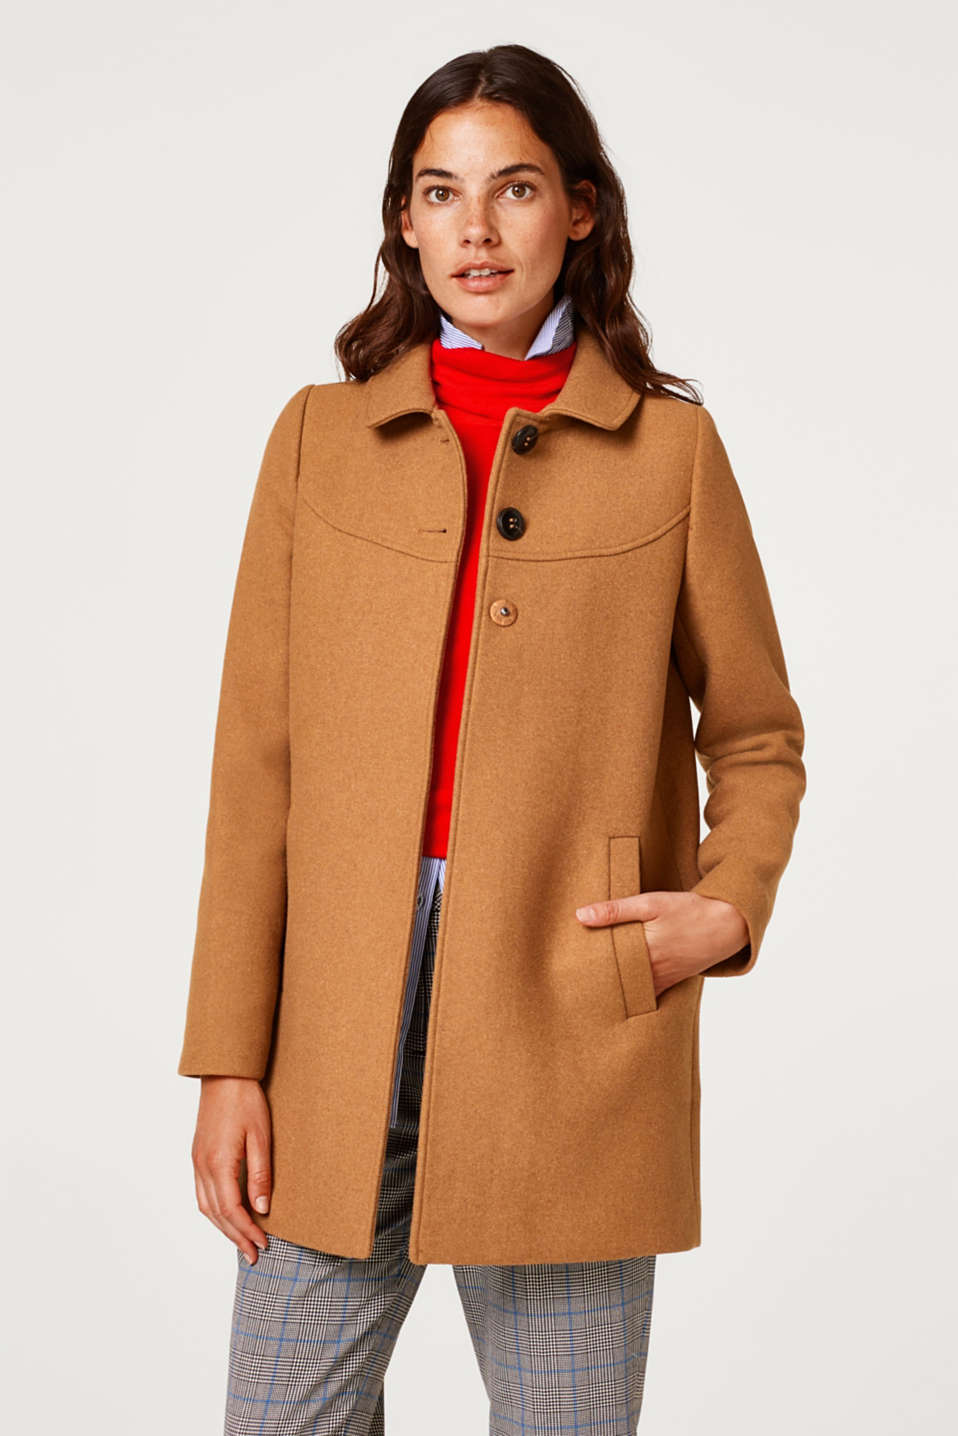 Esprit - Made of wool: coat with a round collar